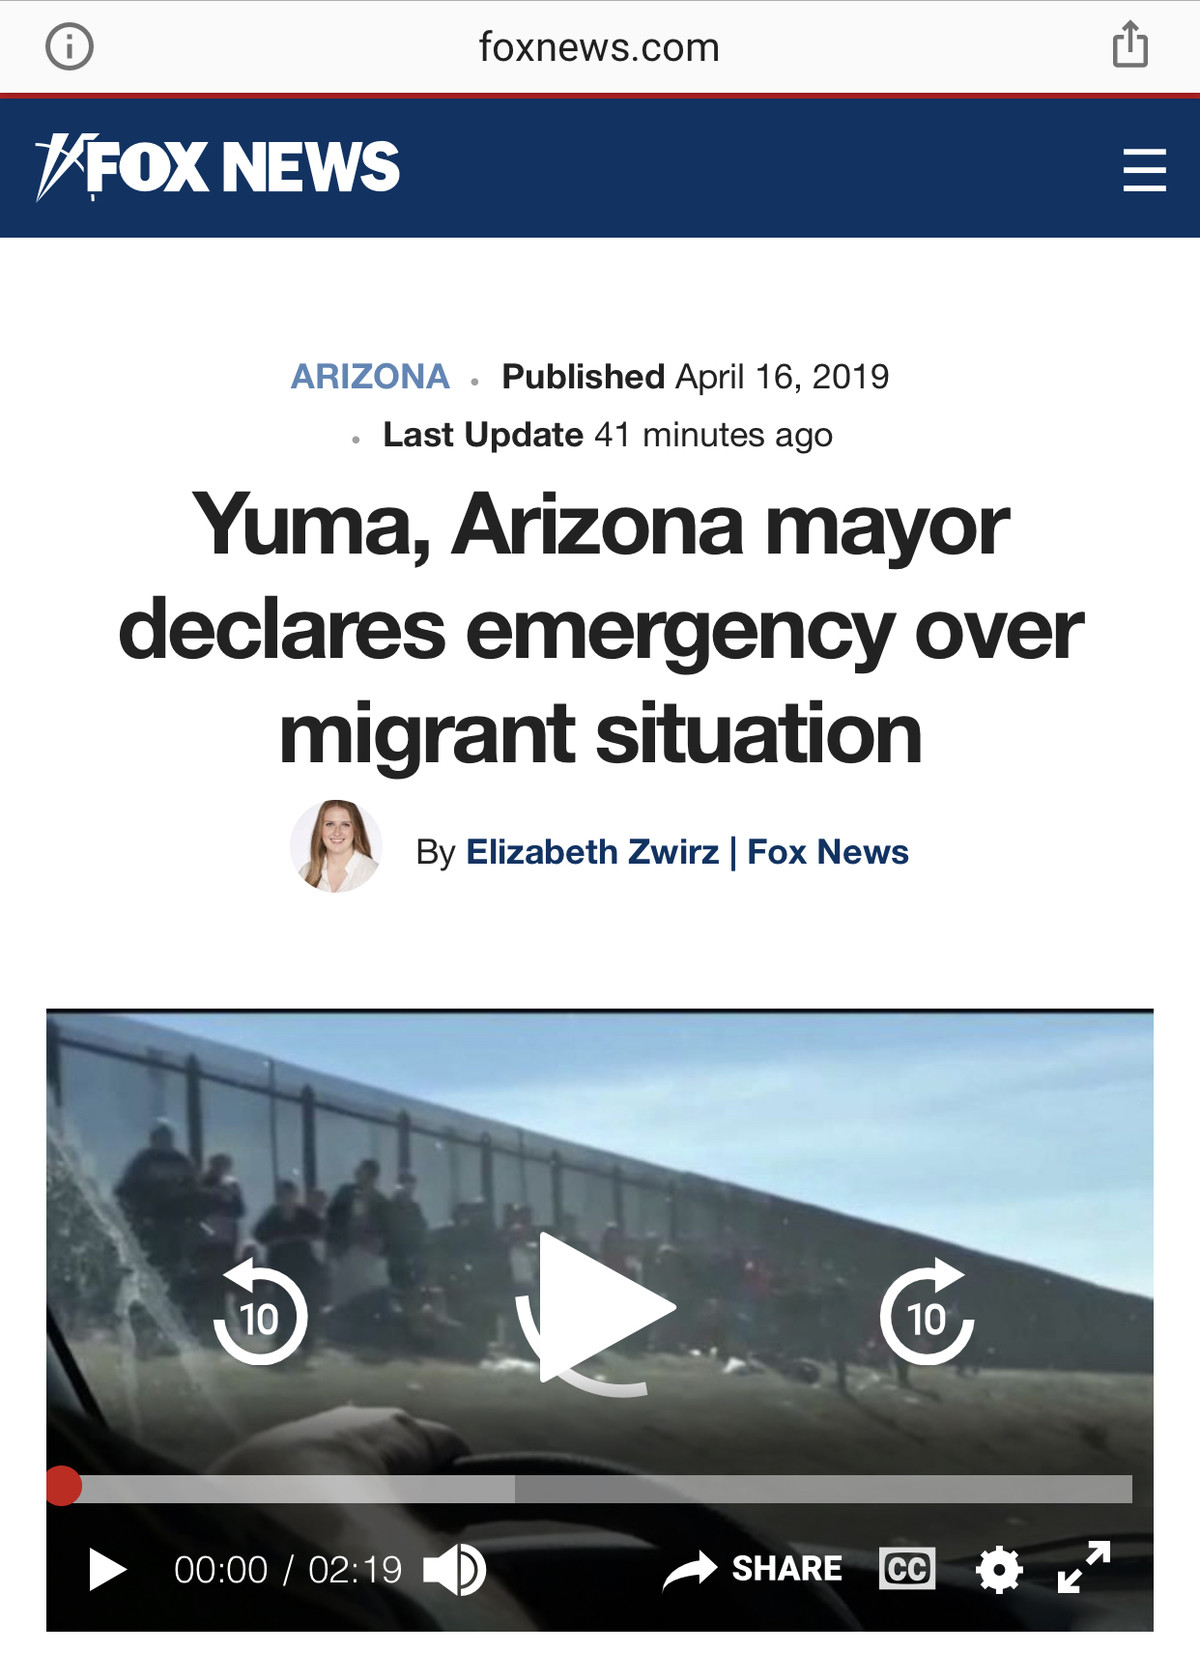 >not a crisis. .. Send in thousands of these . There won't be border issues anymore.